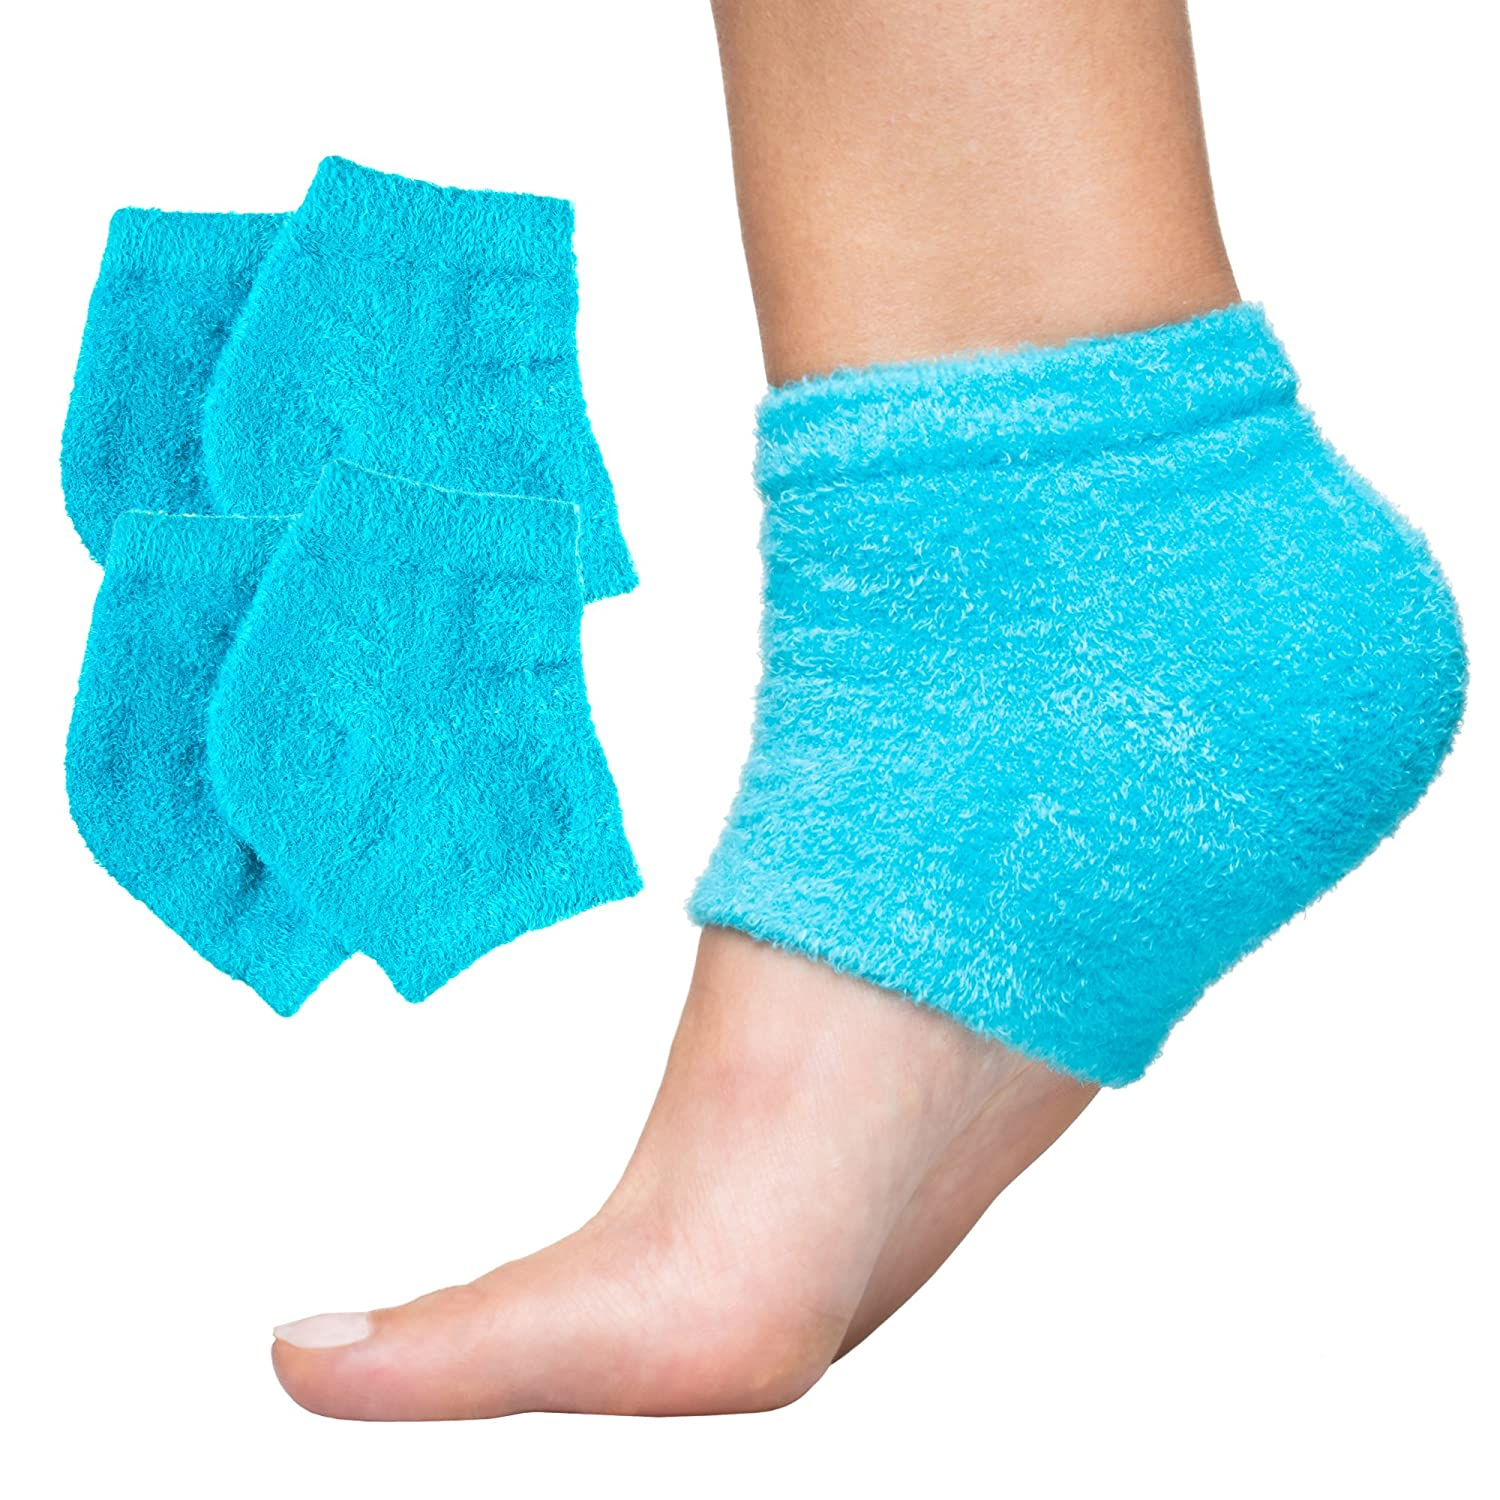 ZenToes Moisturizing Heel Socks with Gel to Heal Dry Cracked Heels (Fuzzy, Blue and Pink)